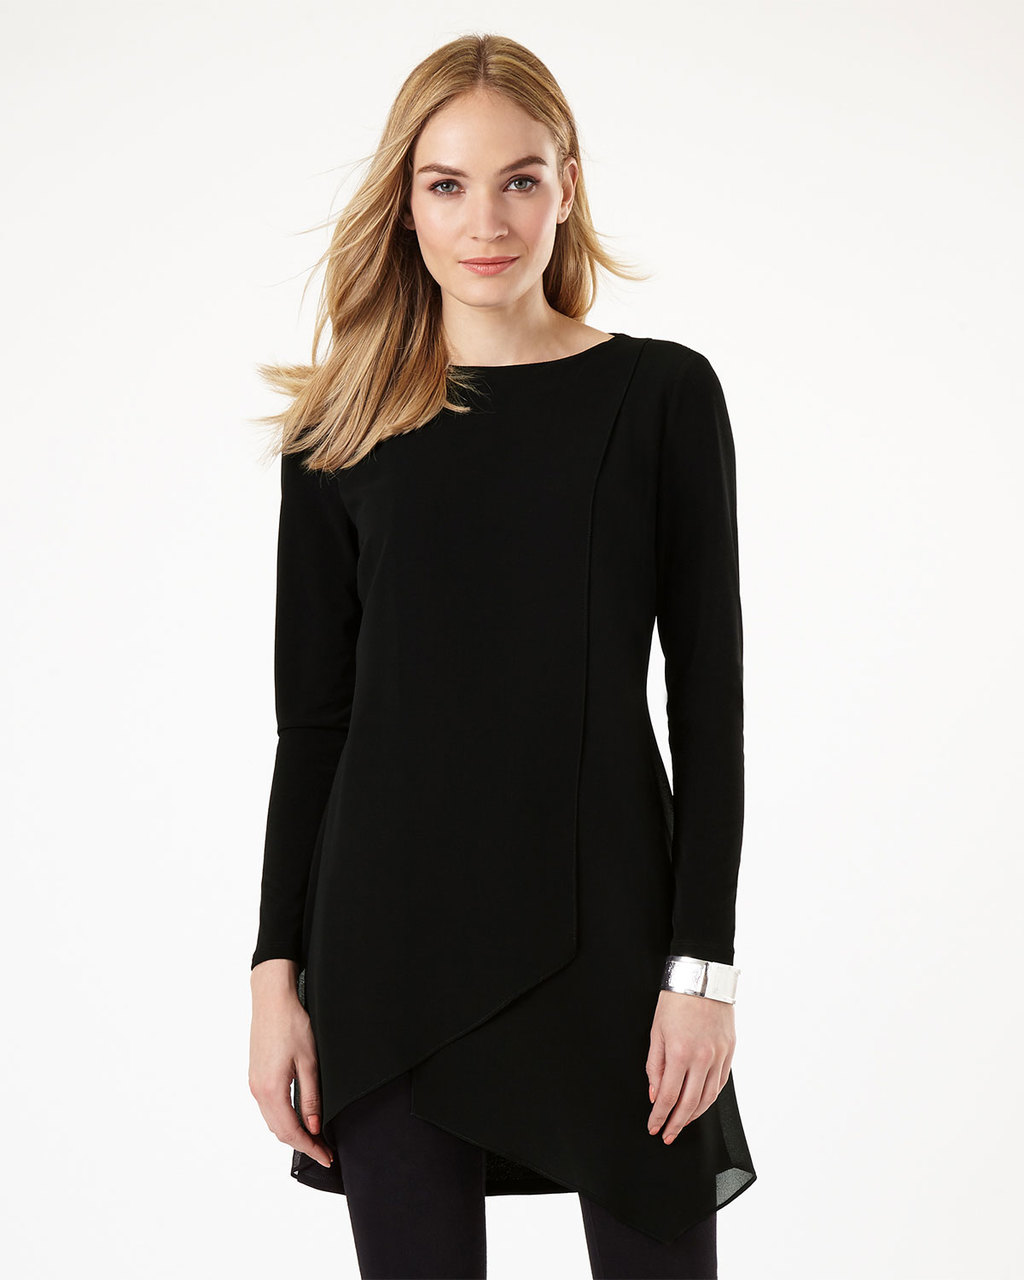 Vinny Tunic - pattern: plain; length: below the bottom; style: tunic; predominant colour: black; occasions: evening; fibres: polyester/polyamide - stretch; fit: body skimming; neckline: crew; sleeve length: long sleeve; sleeve style: standard; pattern type: fabric; texture group: jersey - stretchy/drapey; season: a/w 2016; wardrobe: event